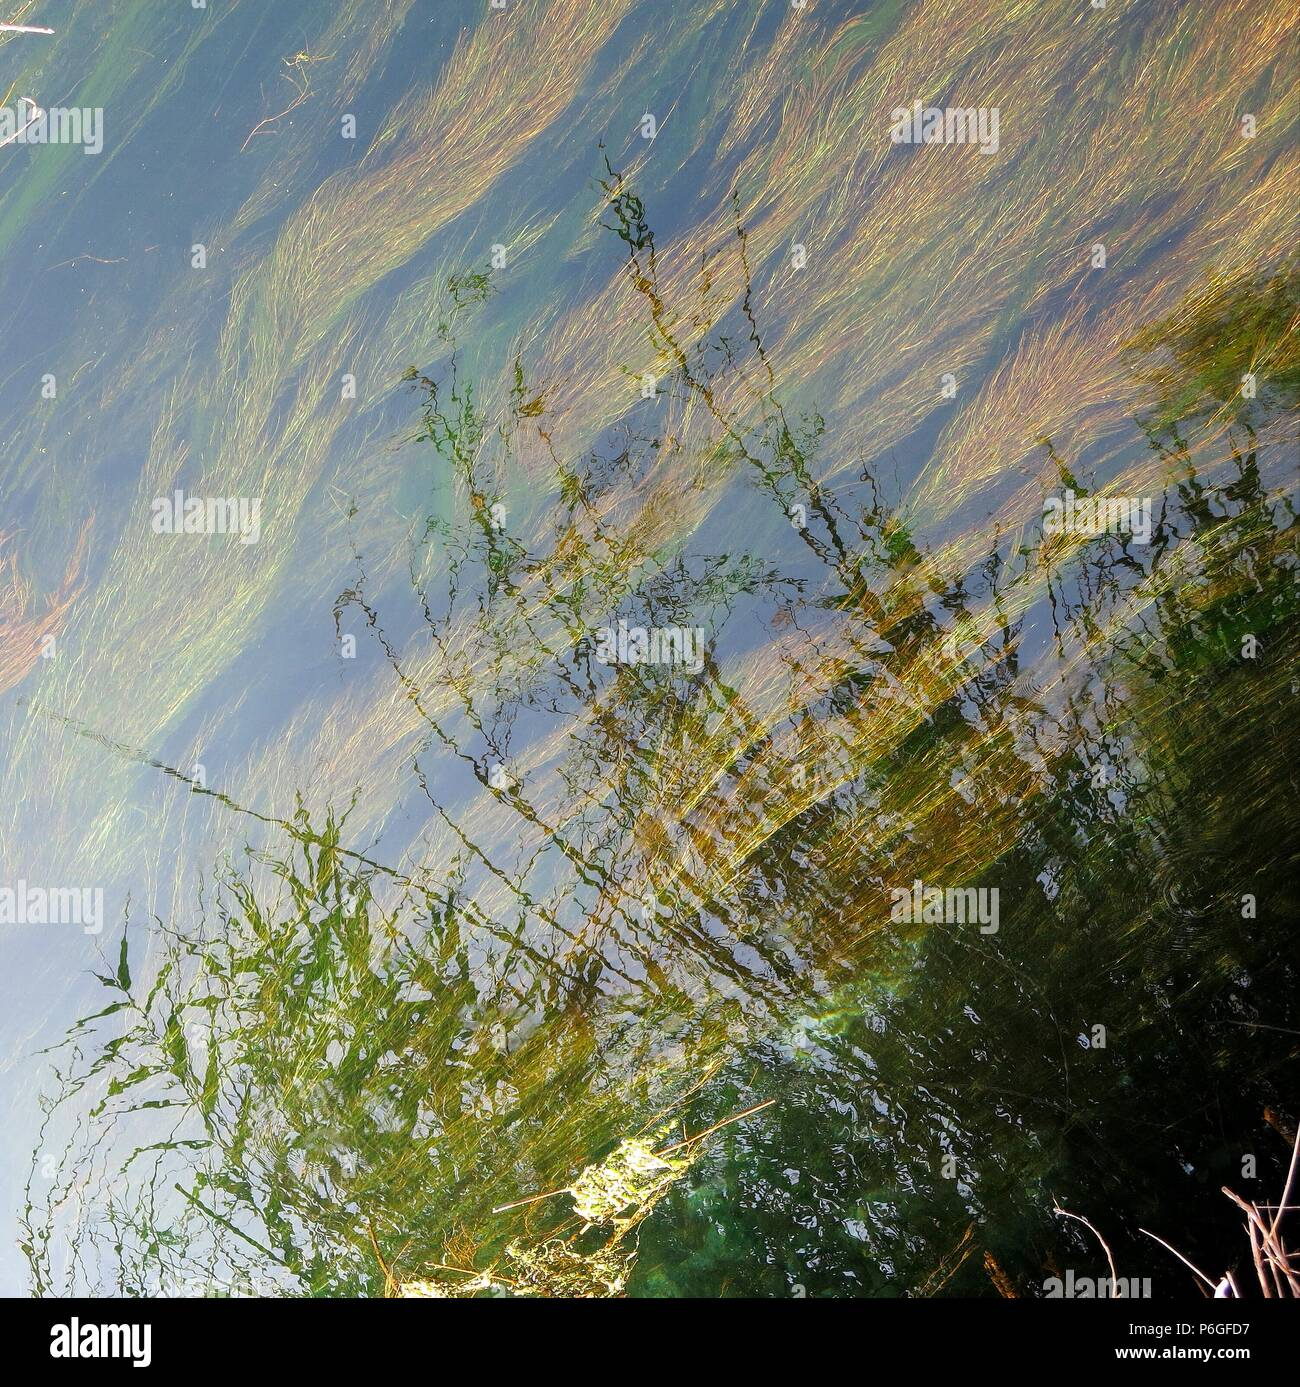 Reflection of reeds on calm river water - Stock Image